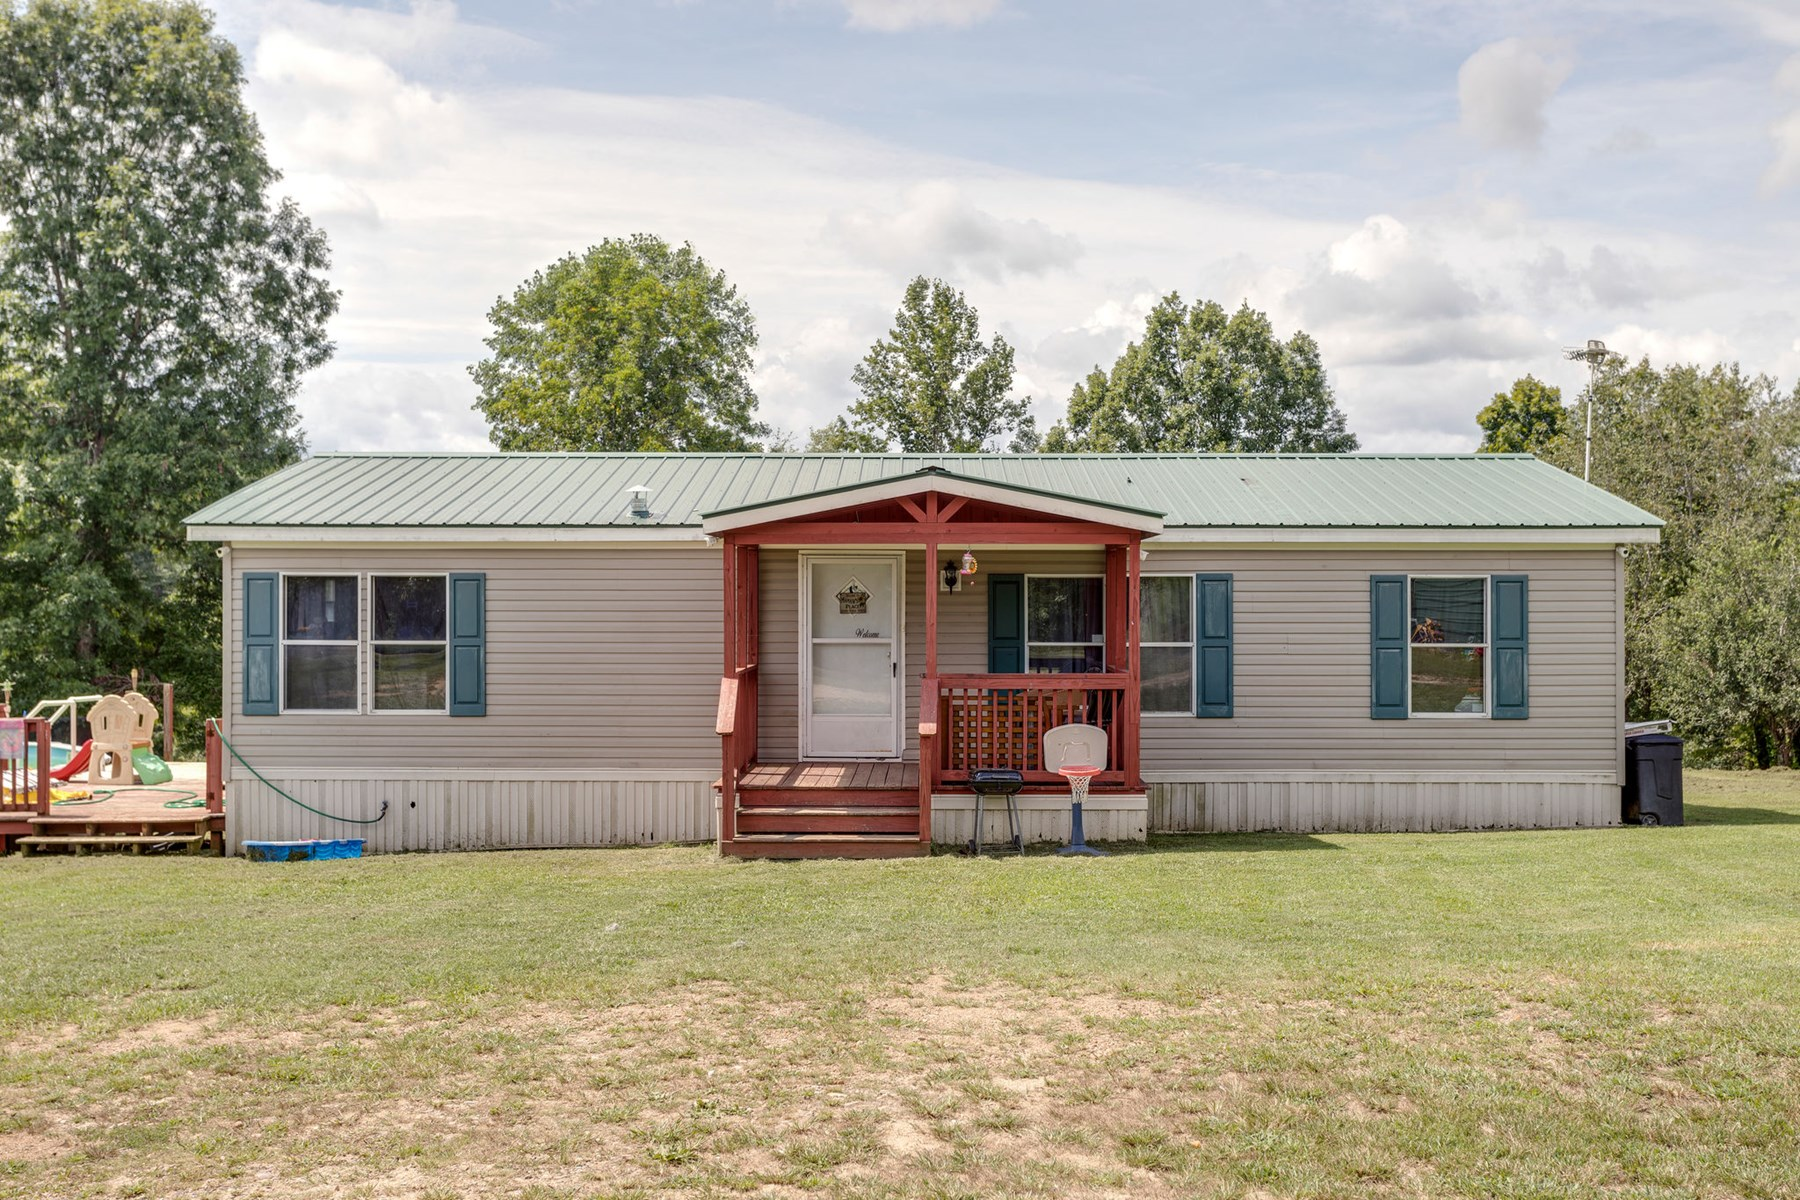 Country Mobile Homes w/Acreage, located in Hohenwald, TN